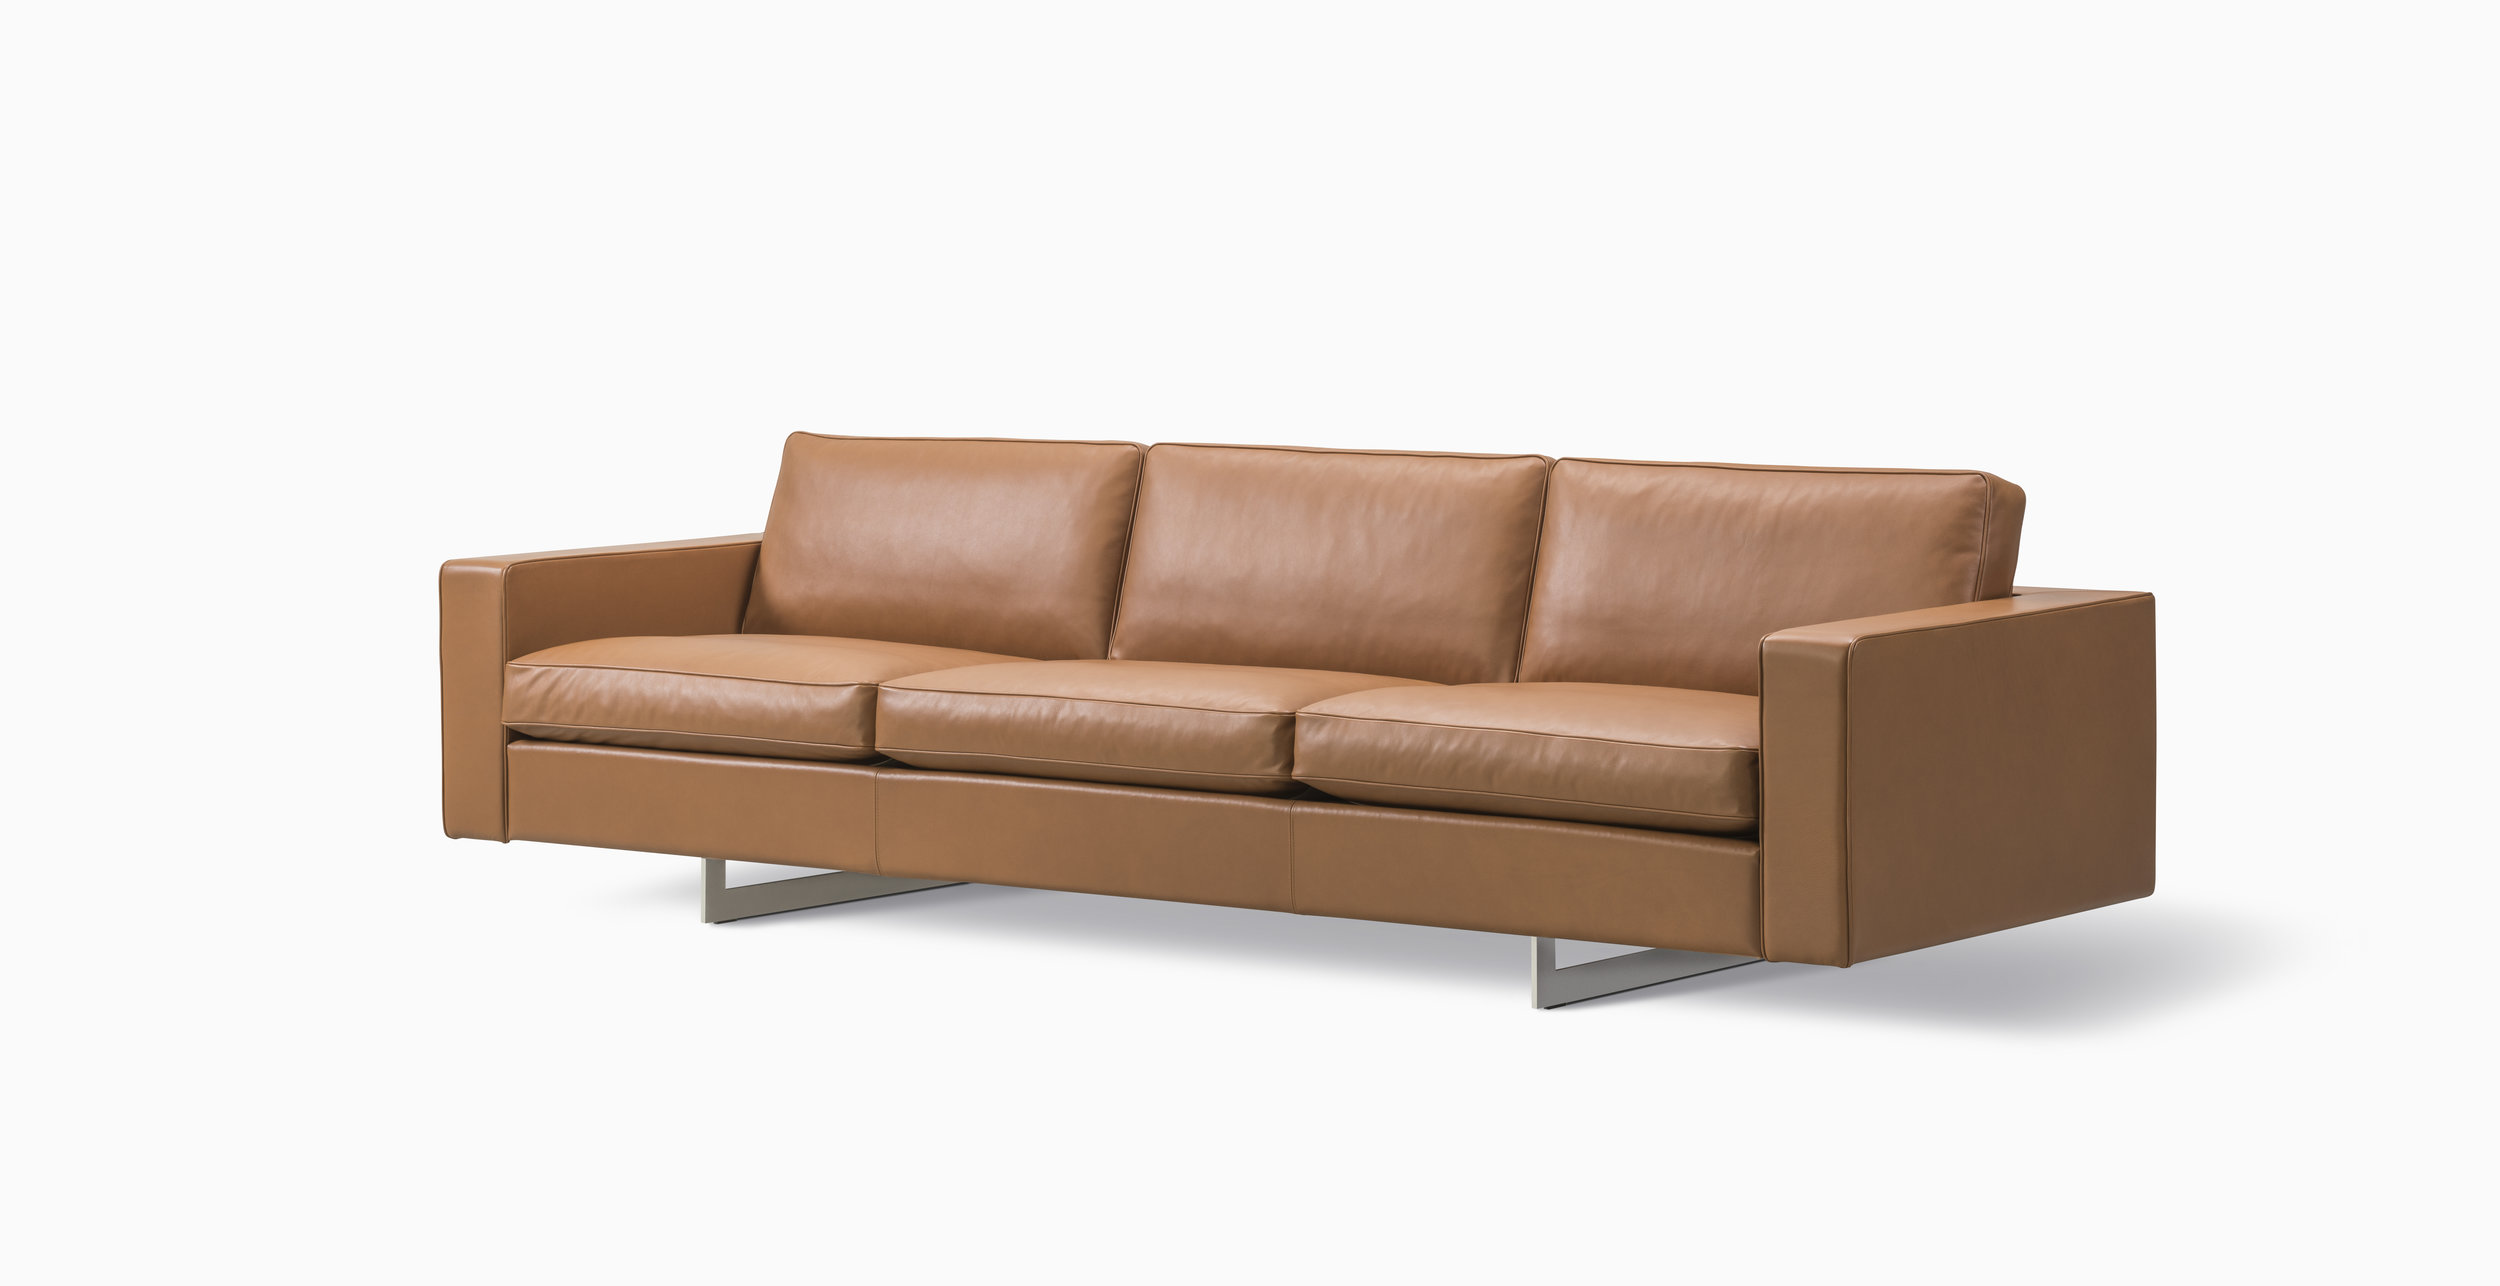 Risom 65 Sofa - 3 Seater